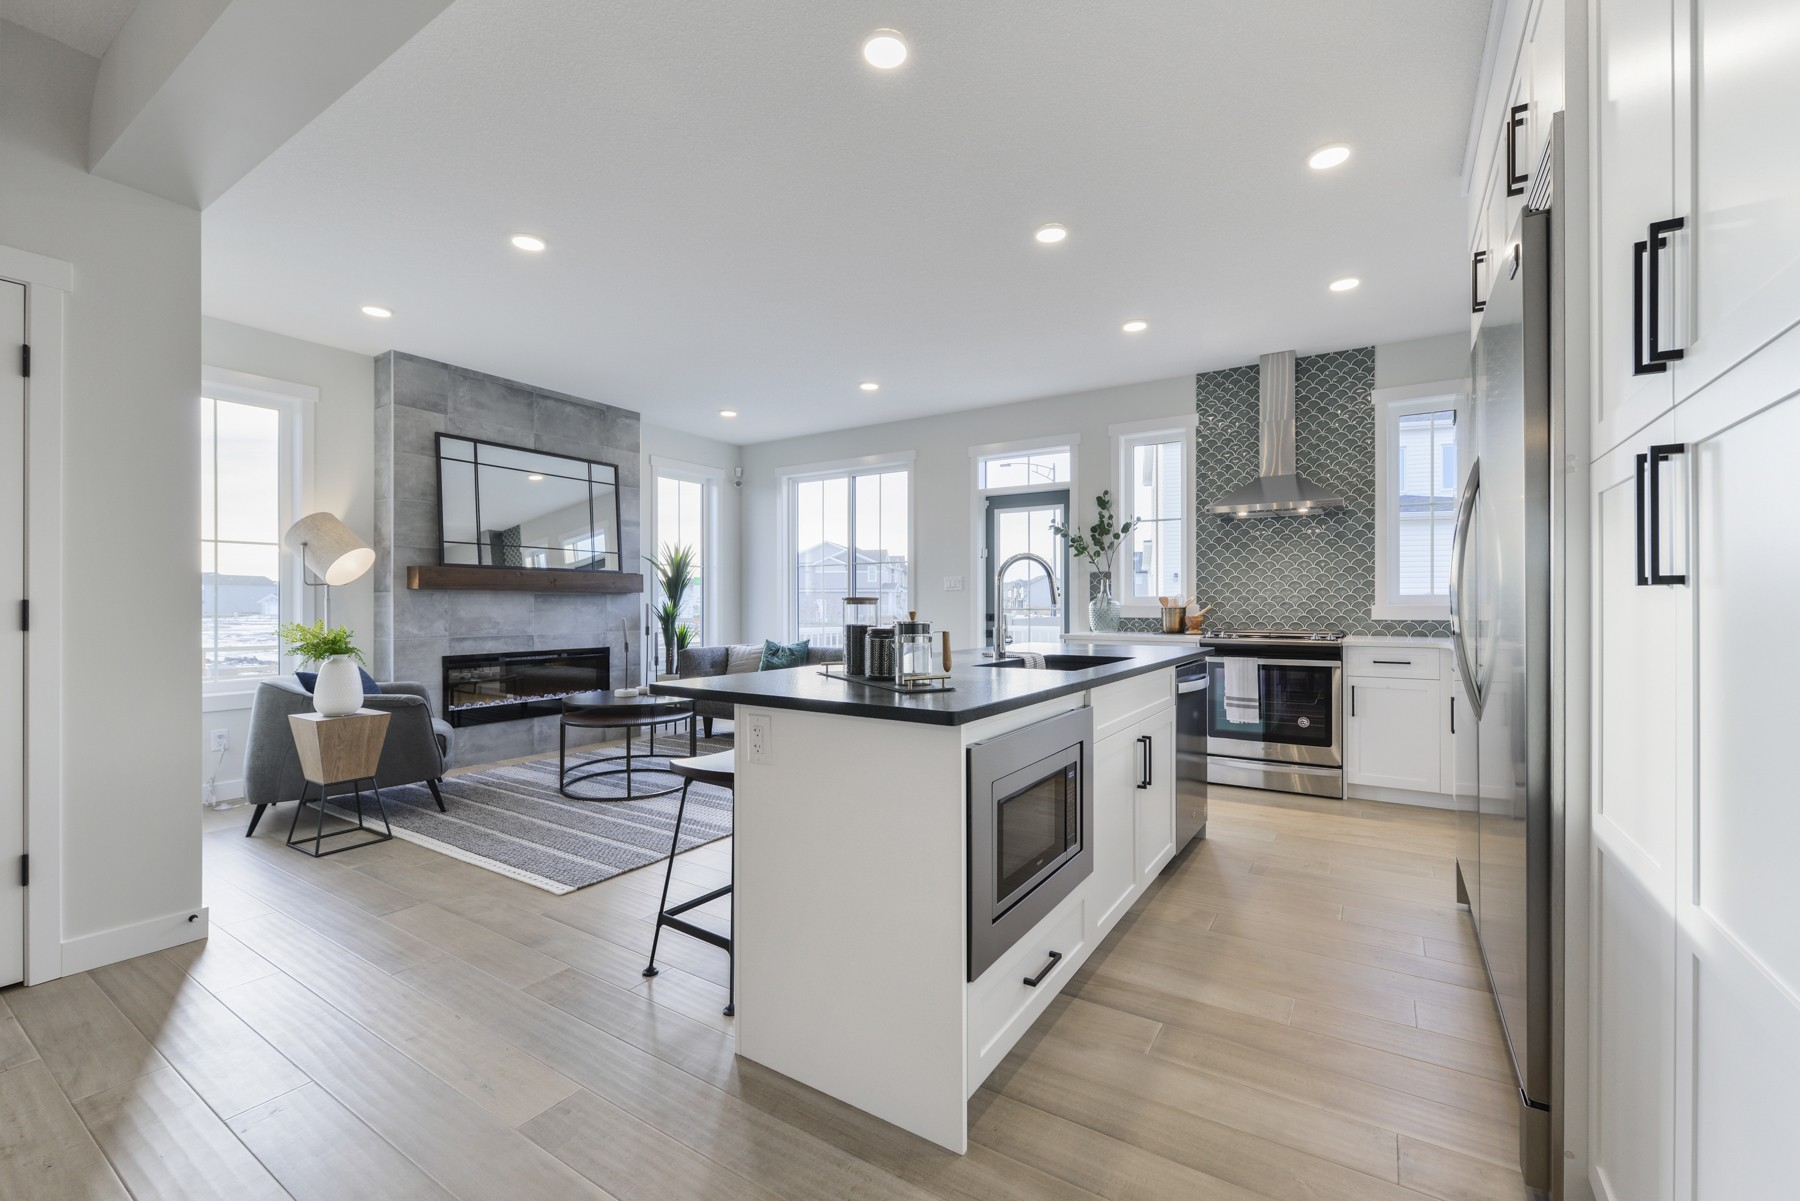 Single family home in west edmonton by City Homes Master Builder